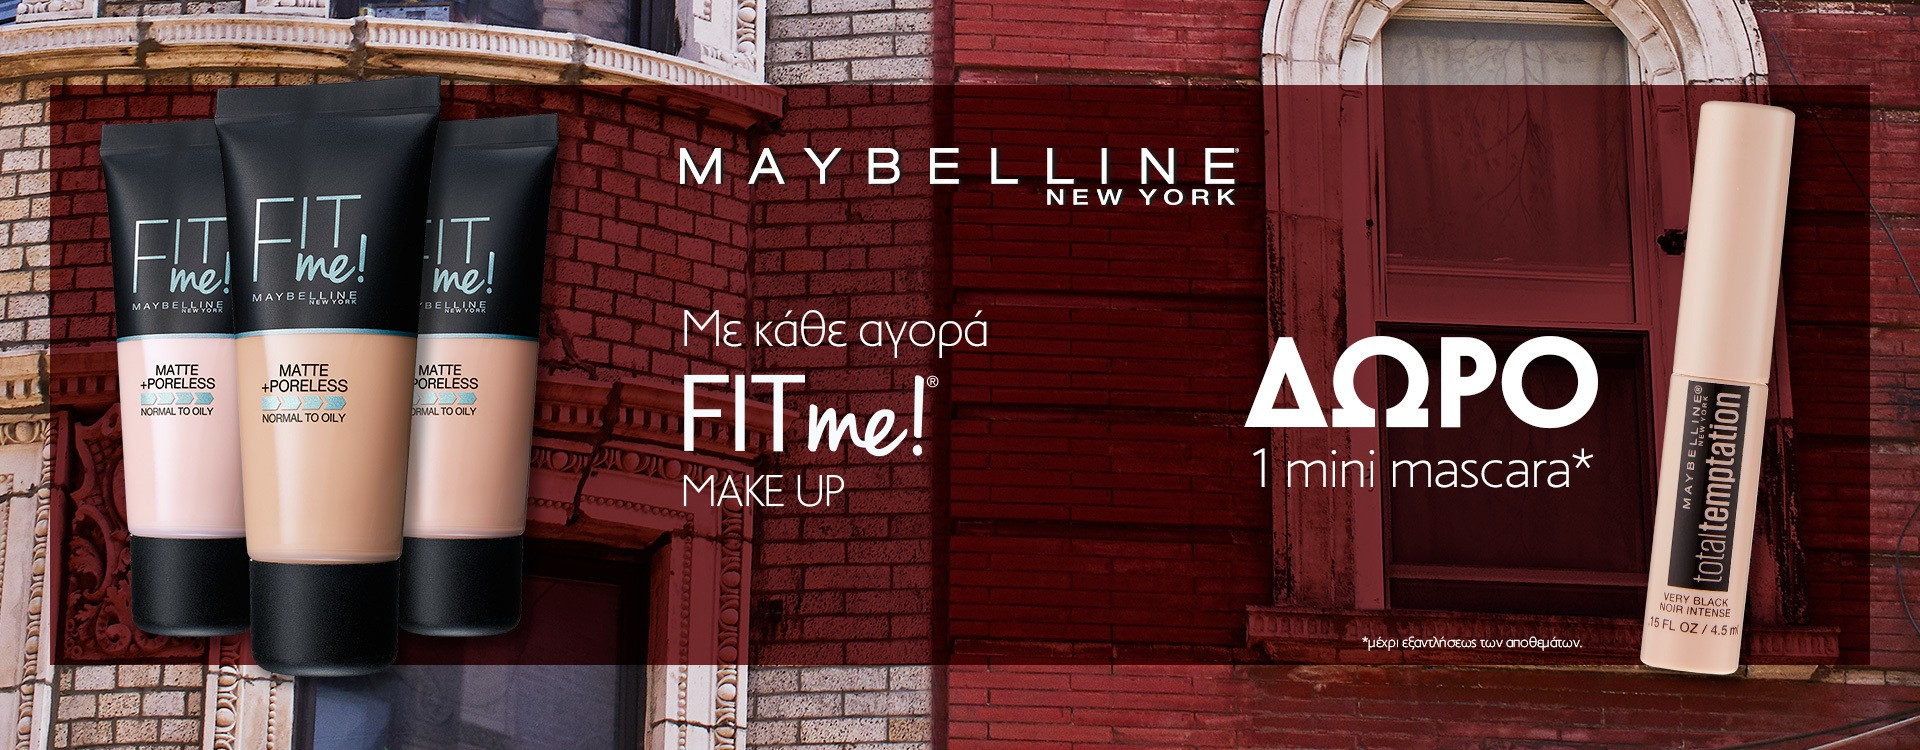 Slider maybelline fitme apr19 1920x750